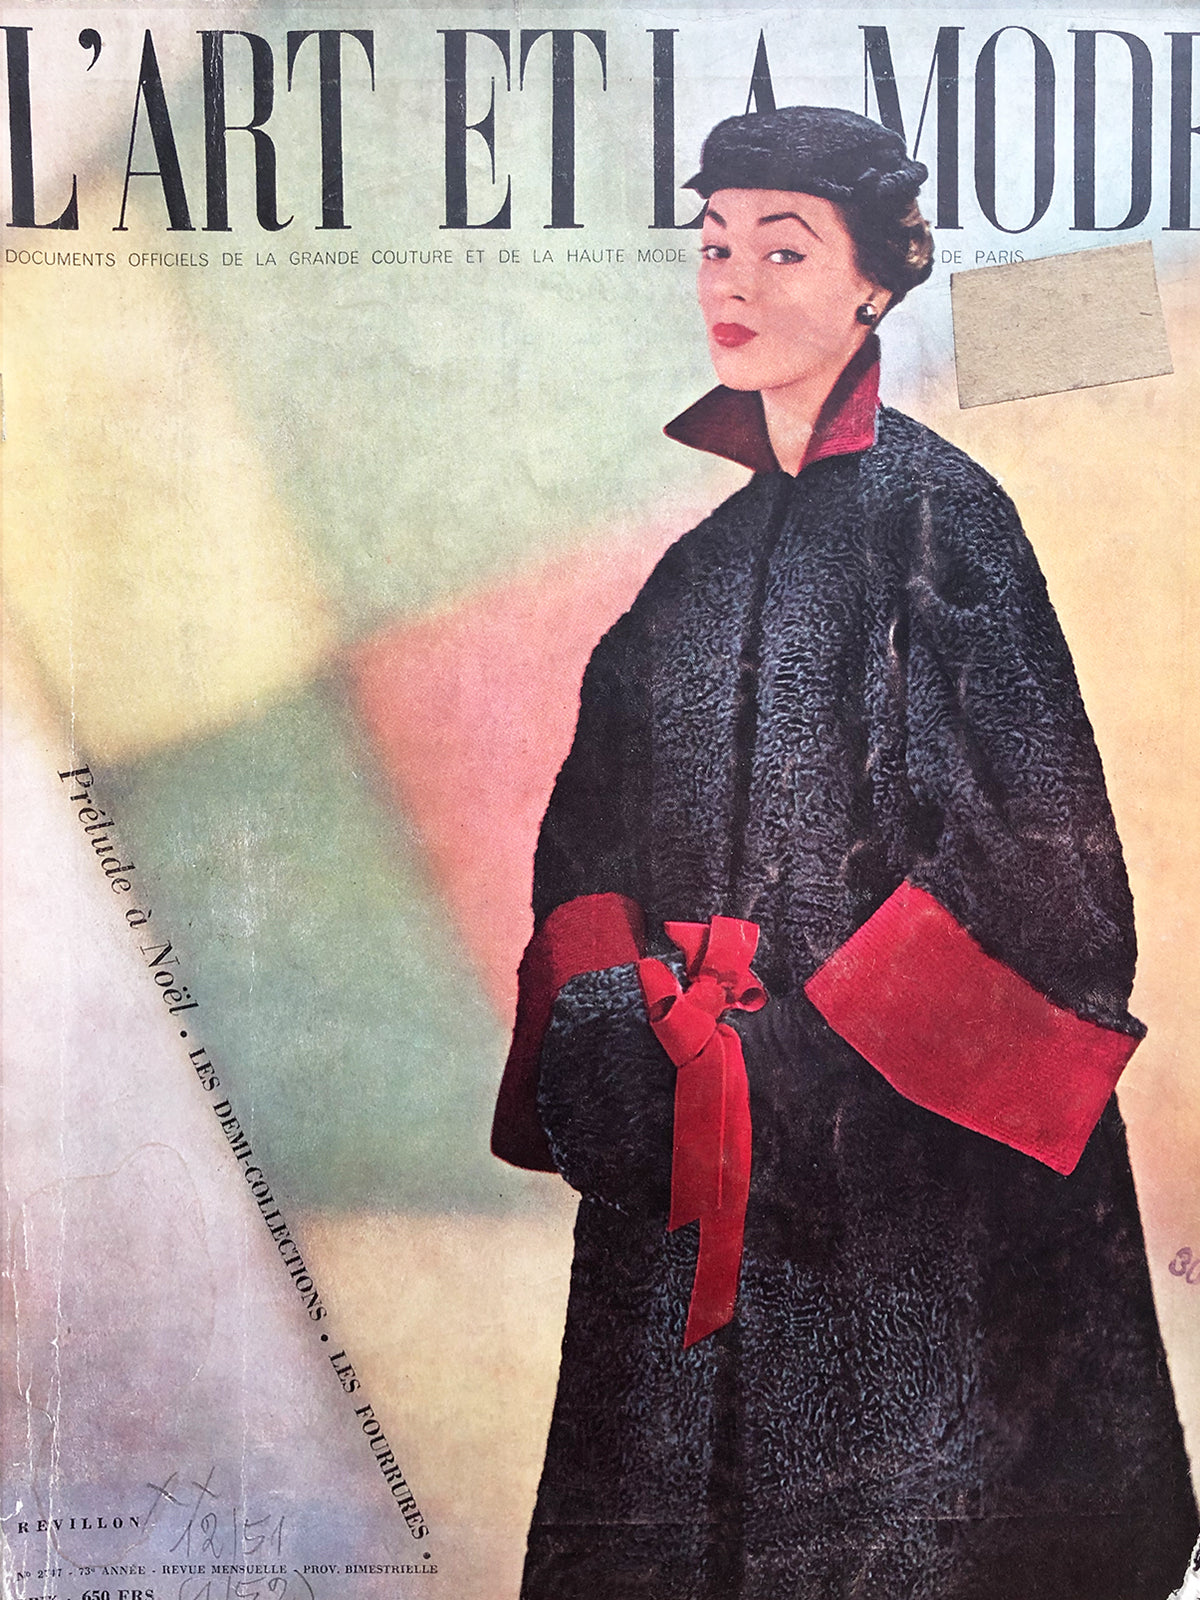 Archived - L'Art et la Mode France Dec 1951/Jan 1952